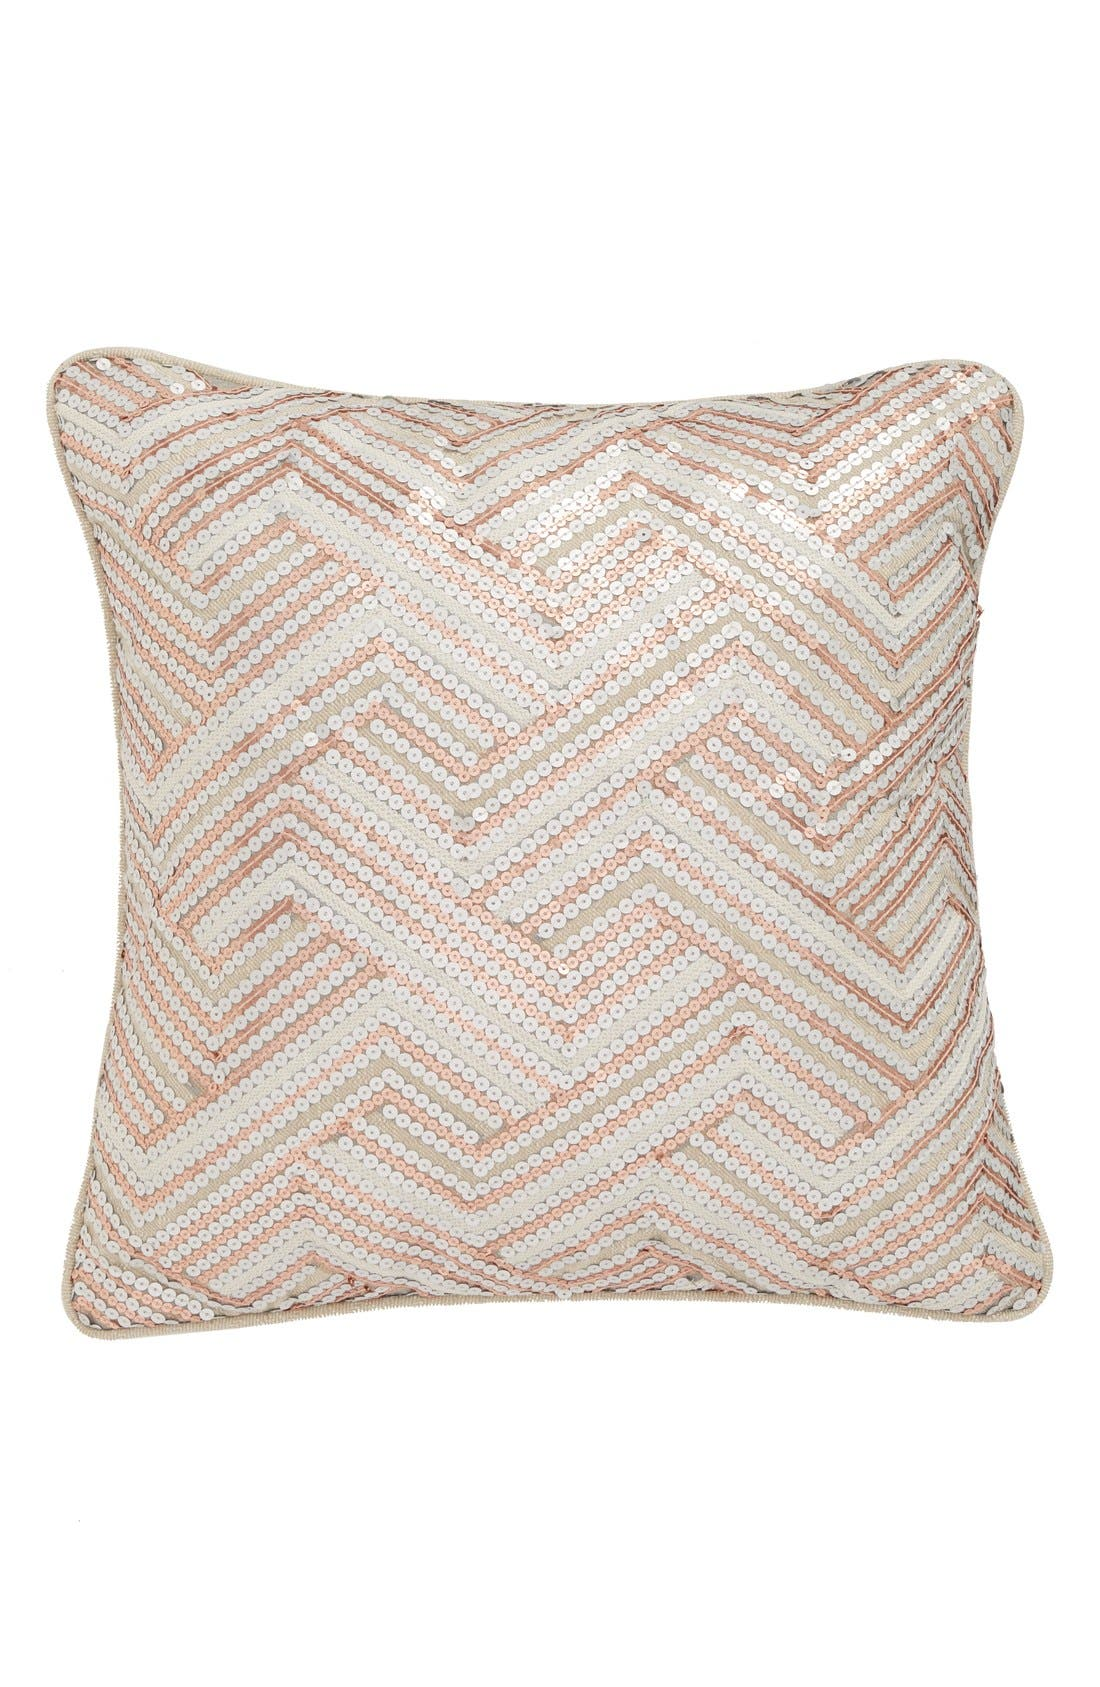 'Lona' Sequin Accent Pillow,                         Main,                         color,